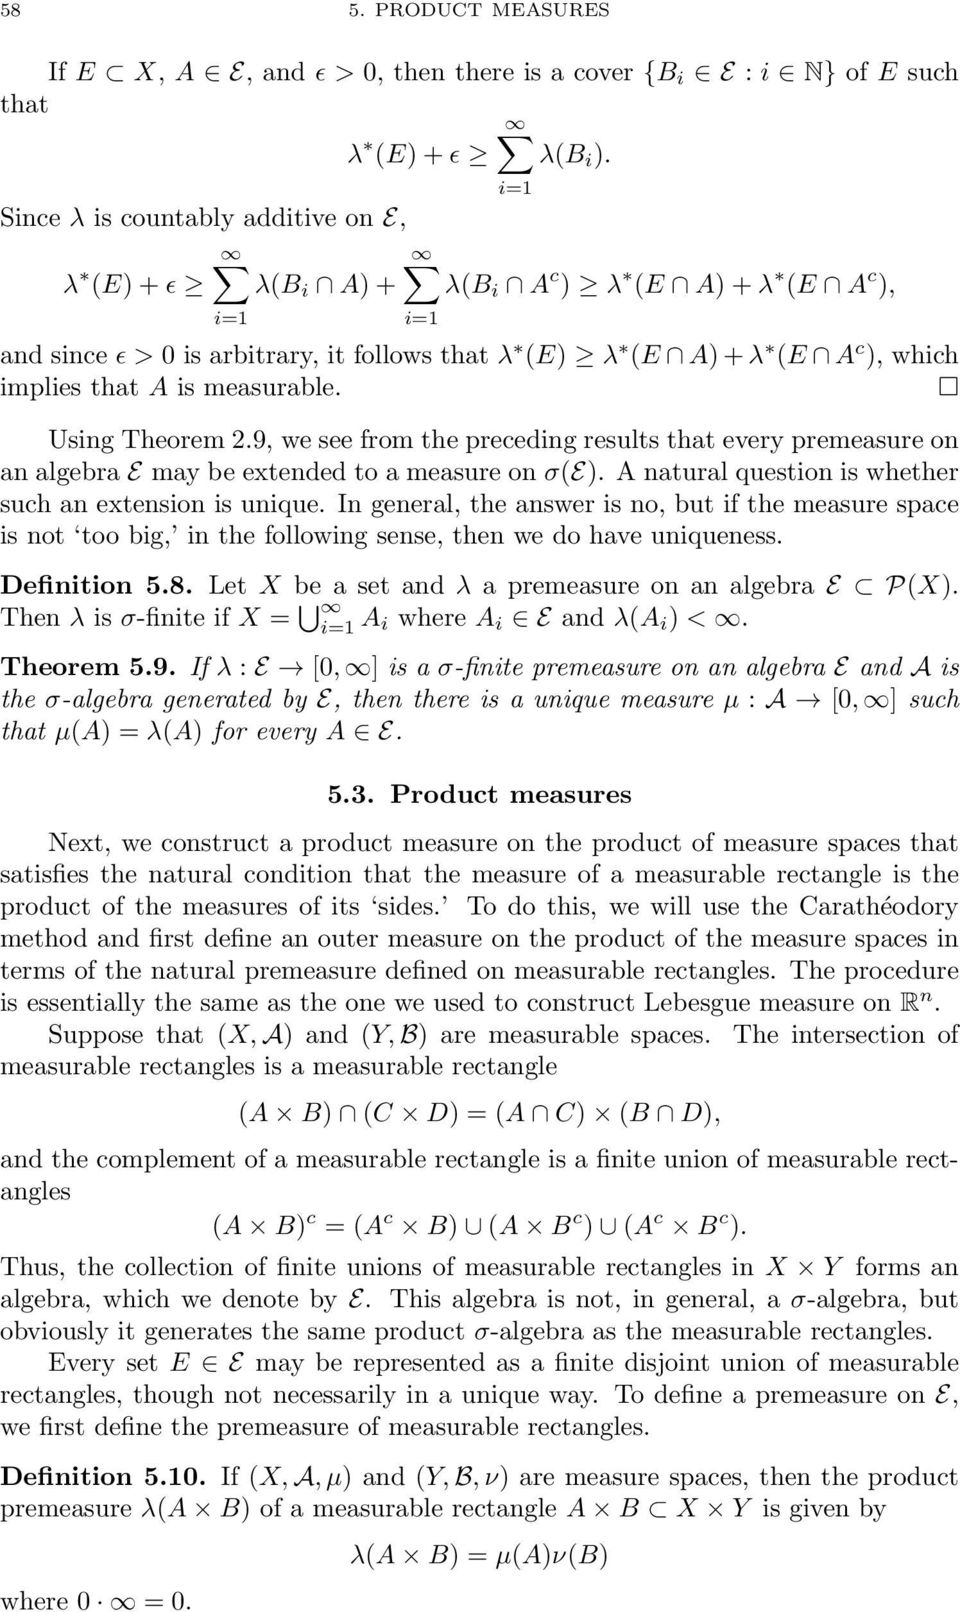 Using Theorem 2.9, we see from the preceding results that every premeasure on an algebra E may be extended to a measure on σ(e. A natural question is whether such an extension is unique.